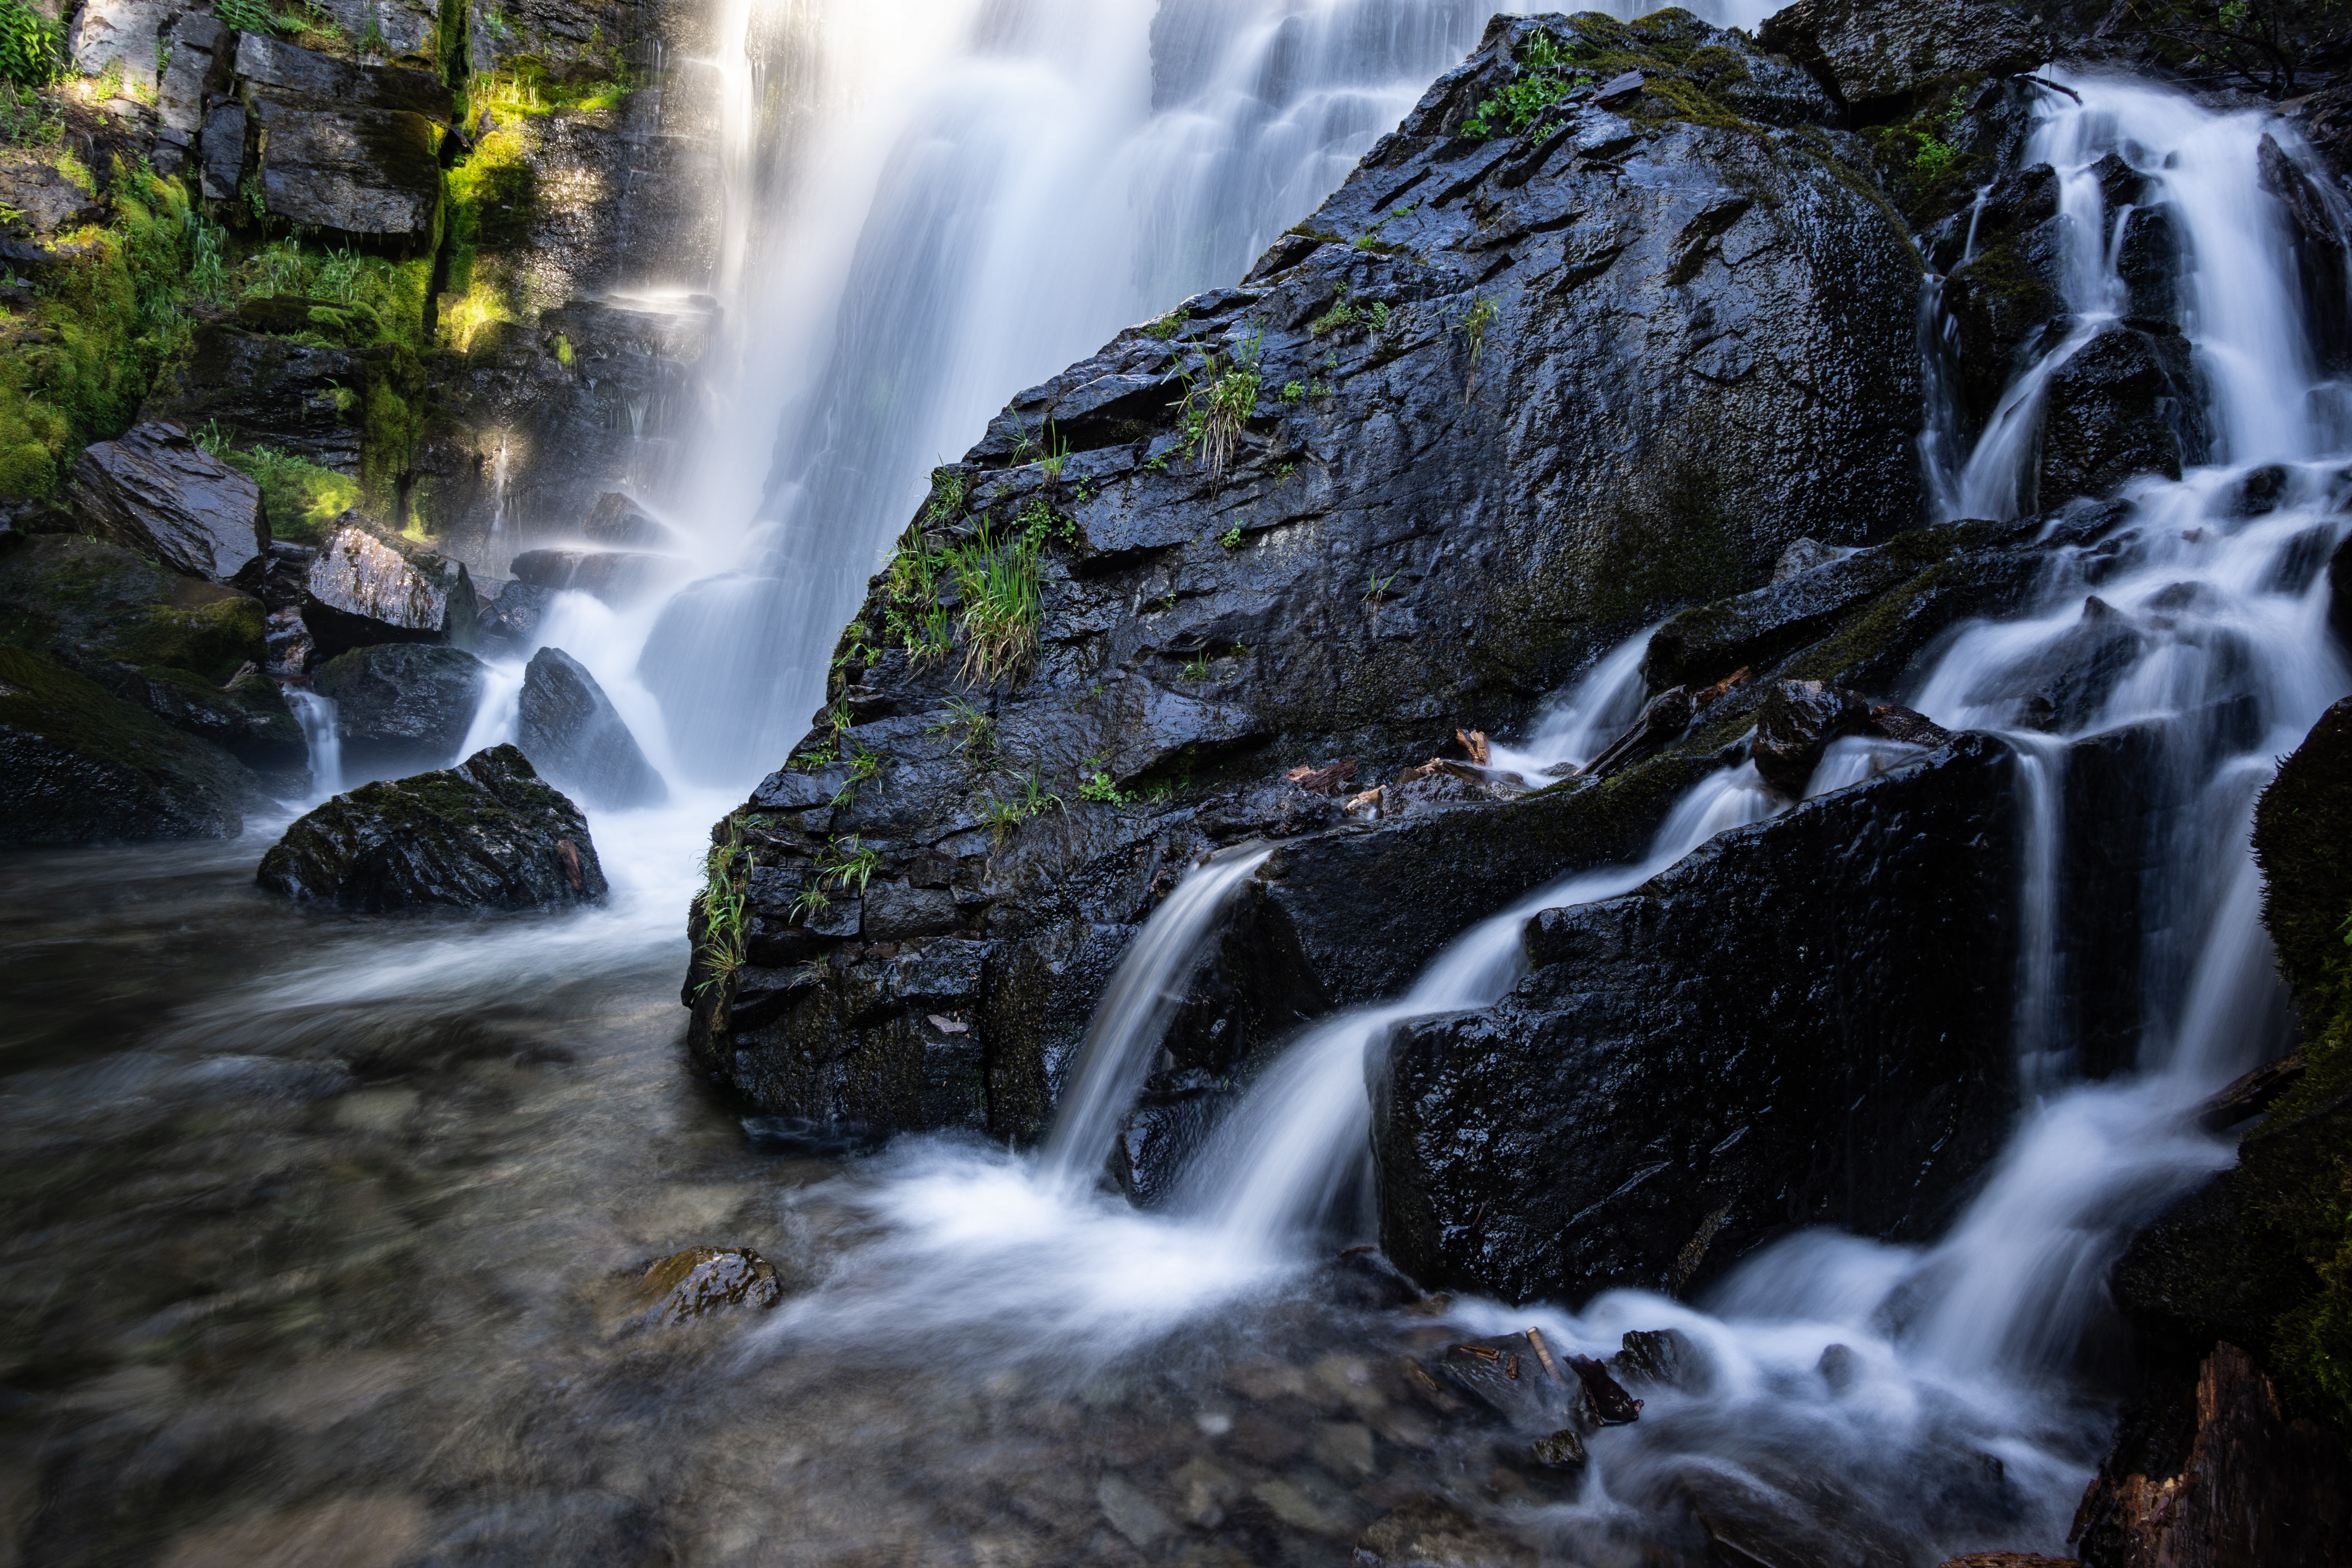 Long exposure of the lower portion of Kings Creek Falls. The water has a feathery, misty quality.